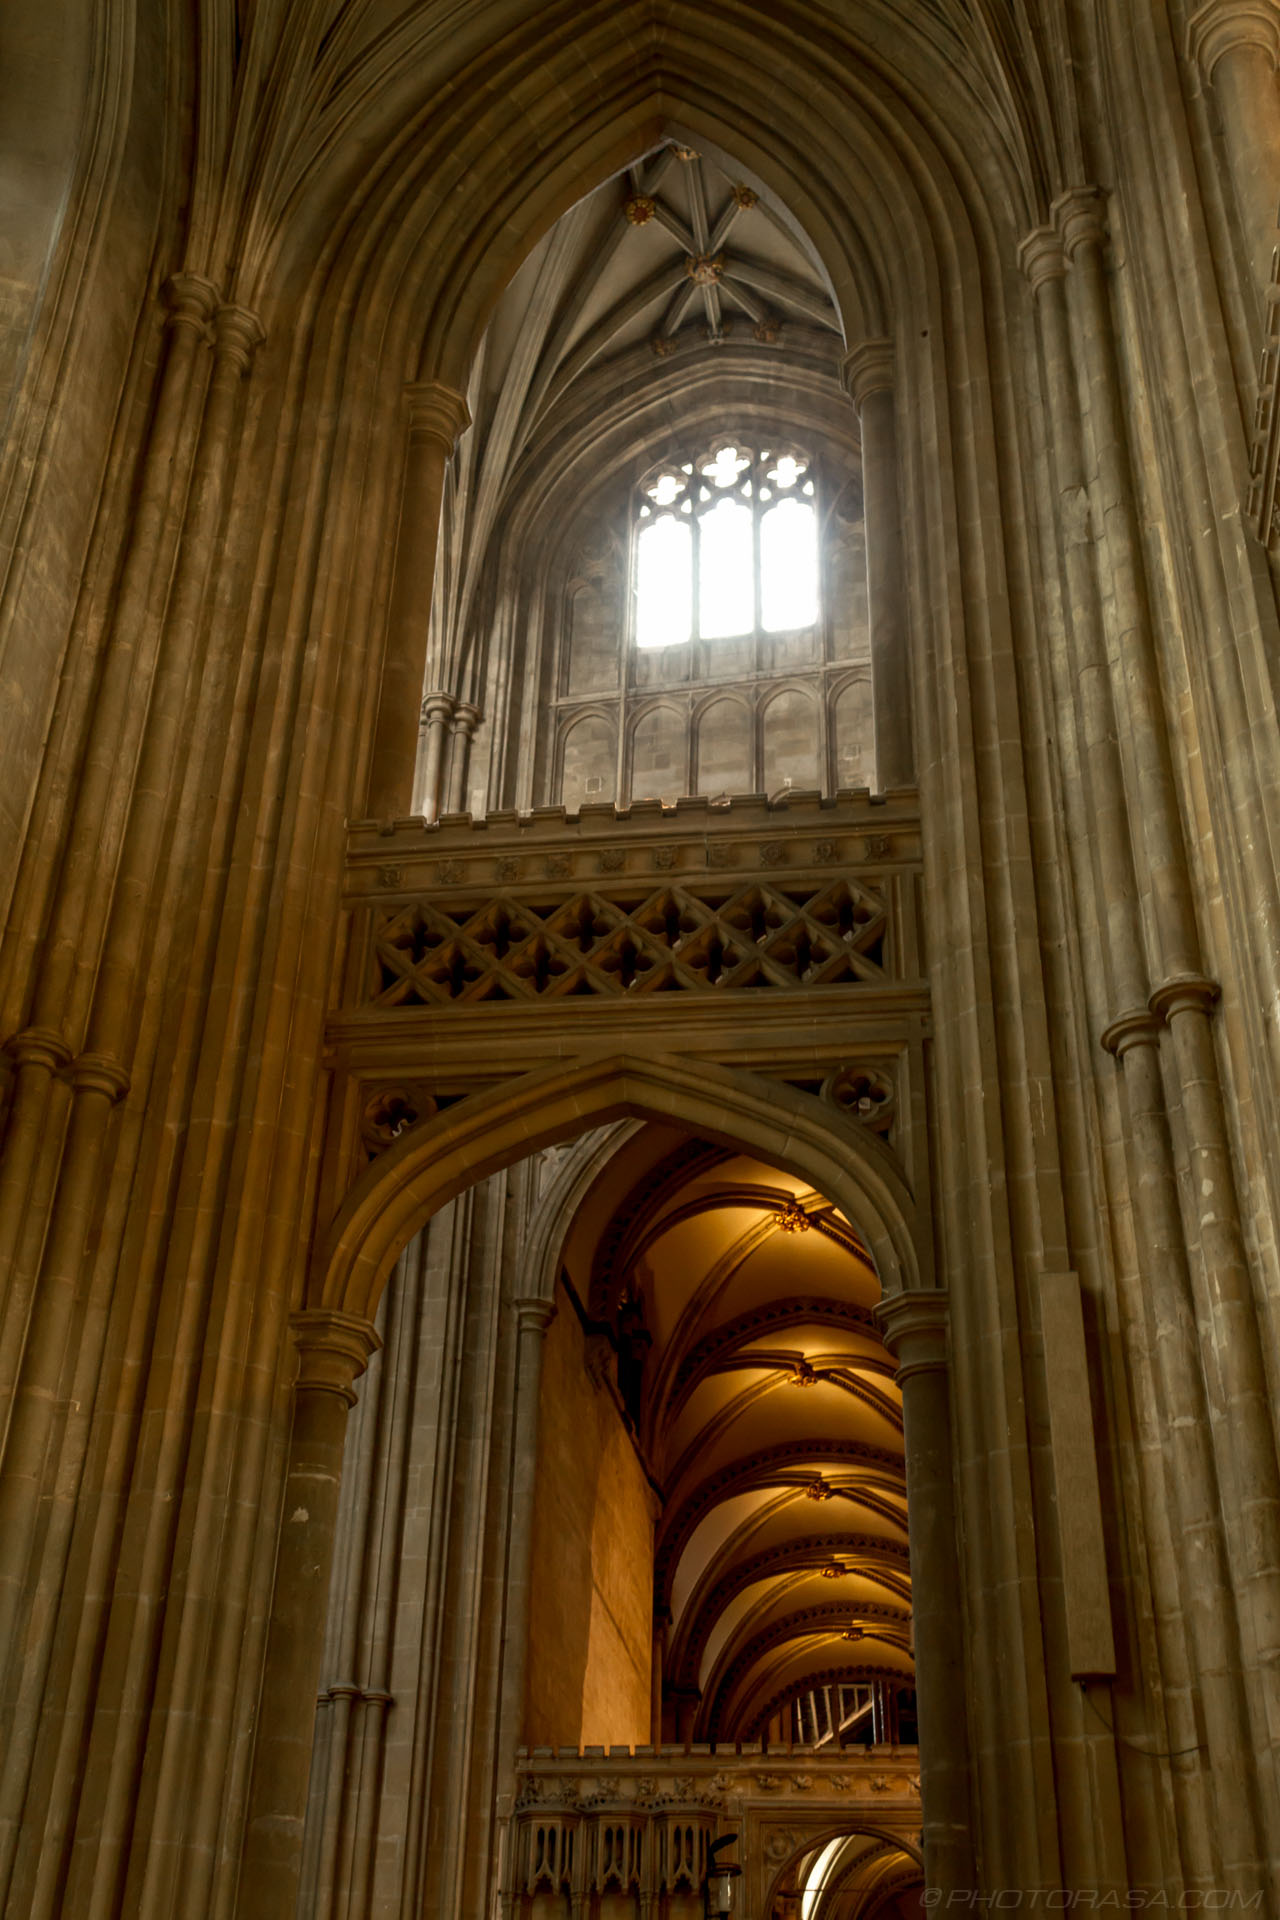 http://photorasa.com/canterbury-cathedral/stacked-cathedral-arches/